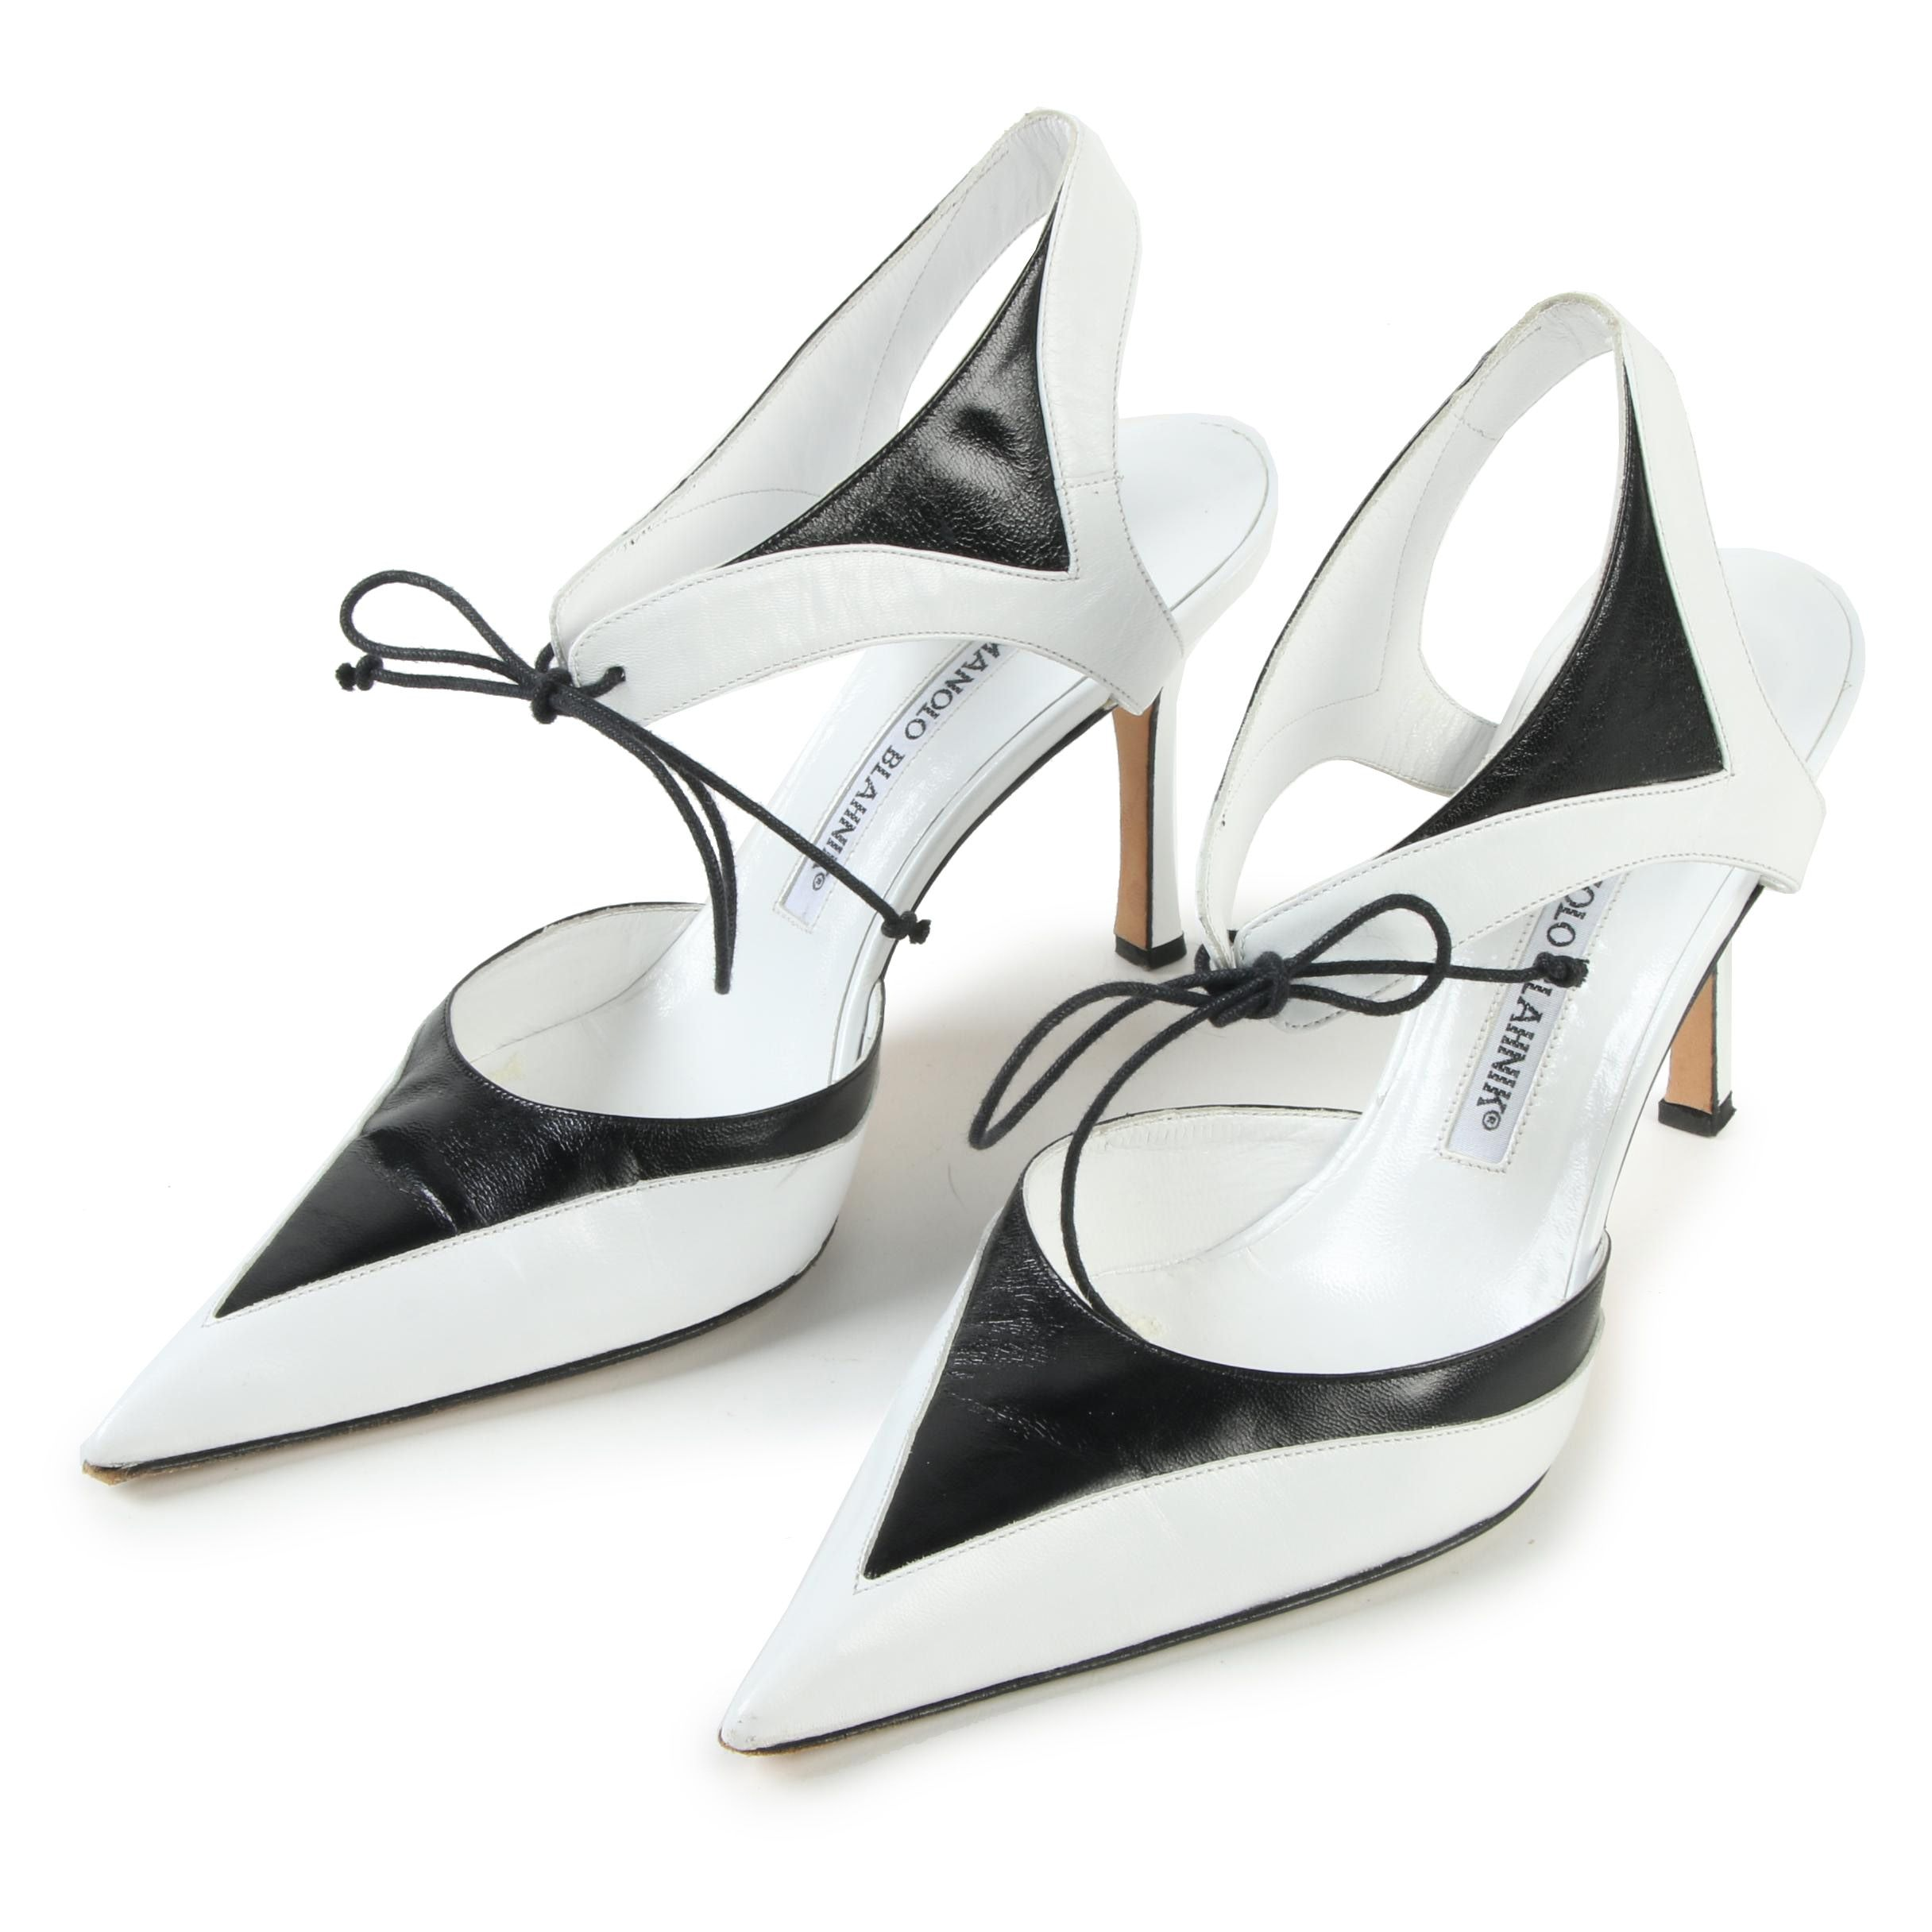 Manolo Blahnik White and Black Leather Colorblock Pointed Toe Heels